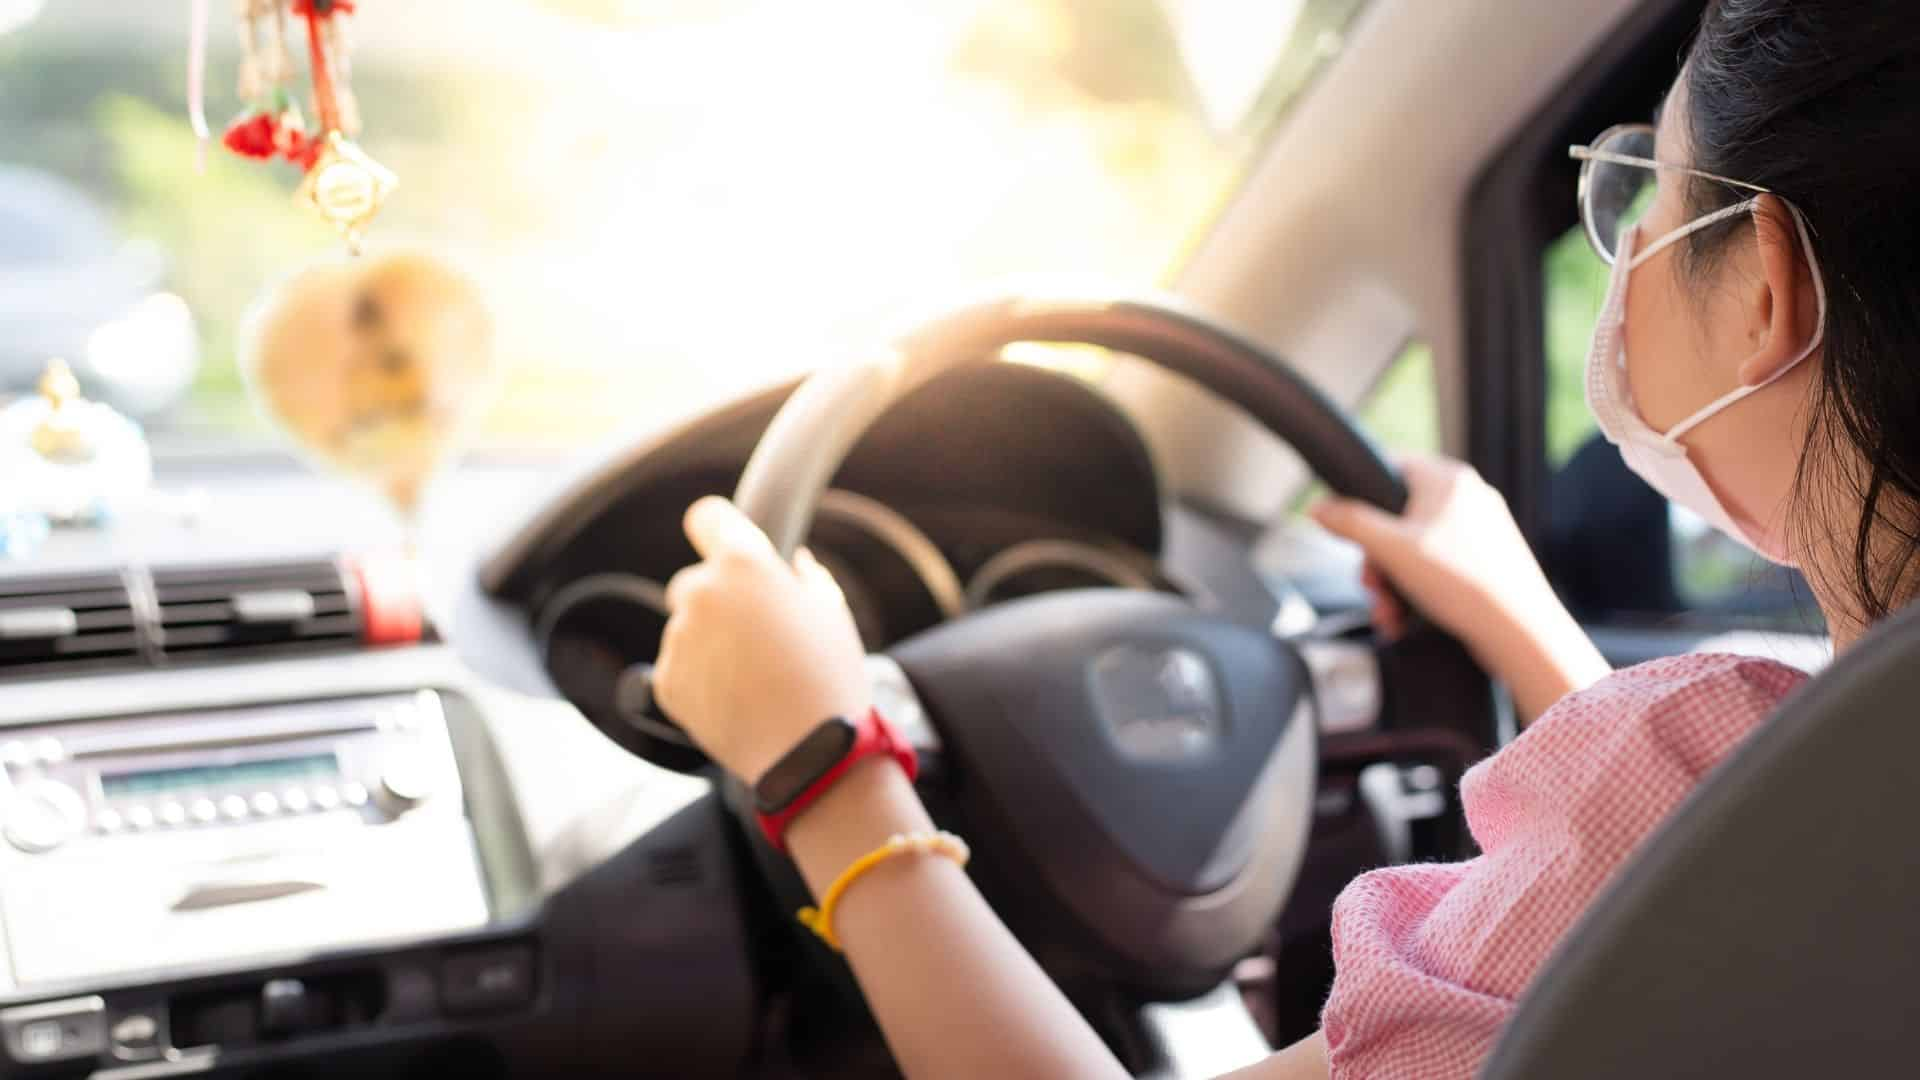 Is it illegal to drive without your license on you in Australia?